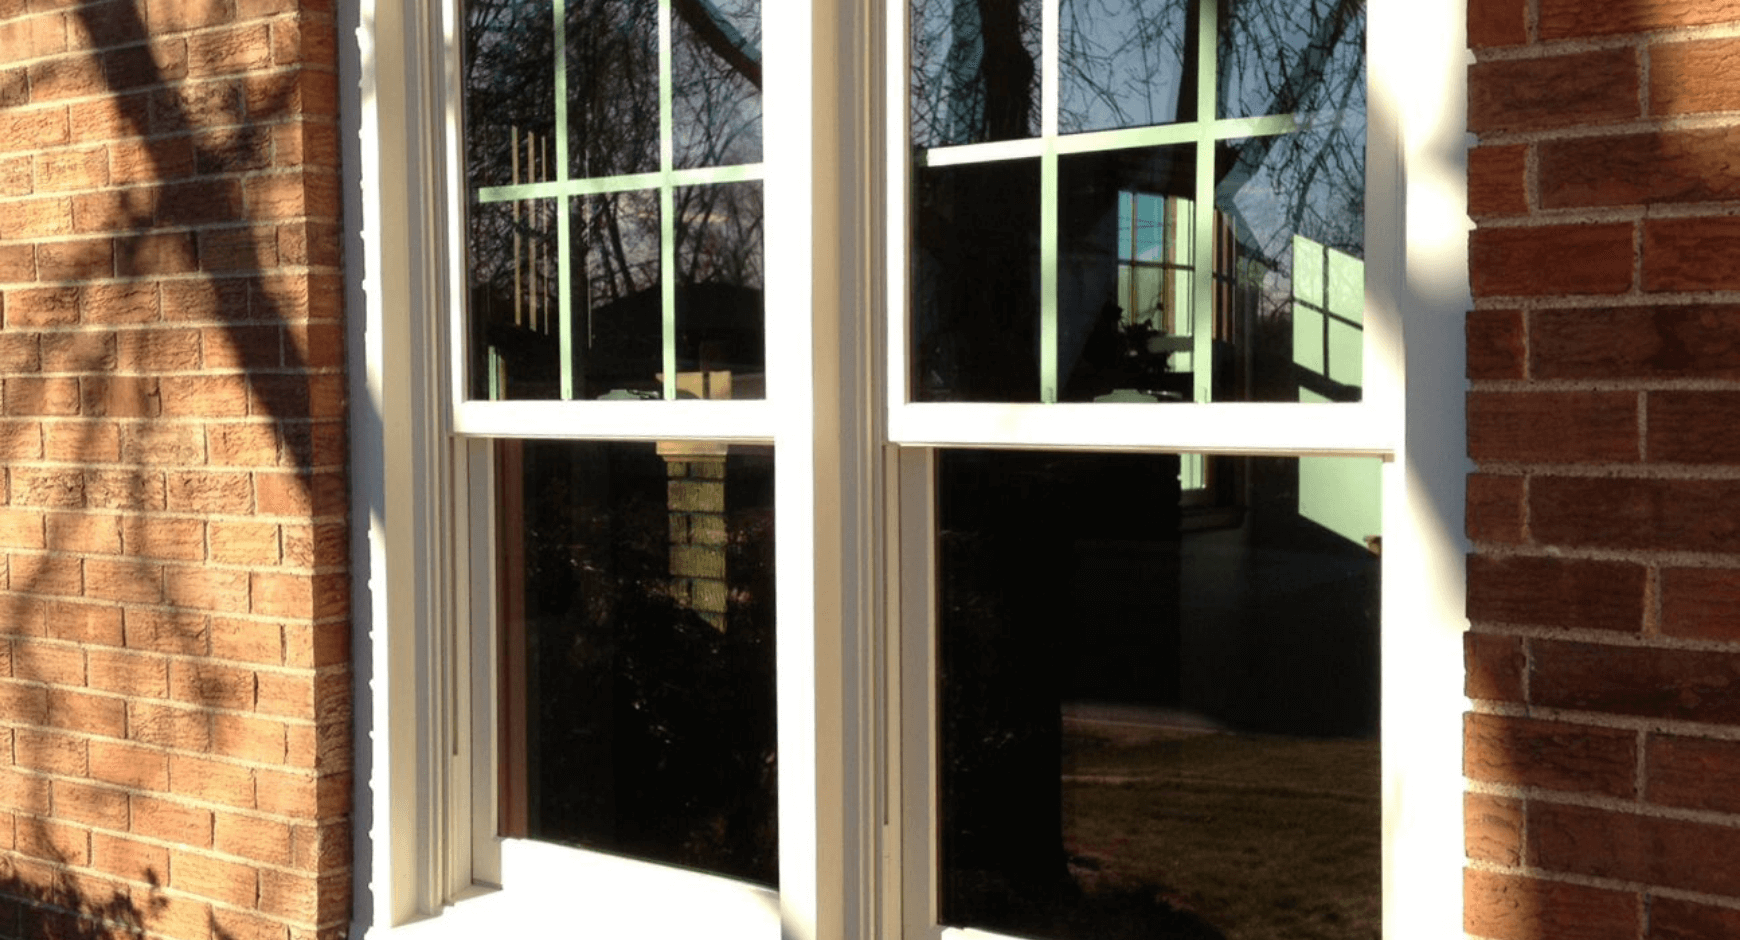 Image of double hung windows